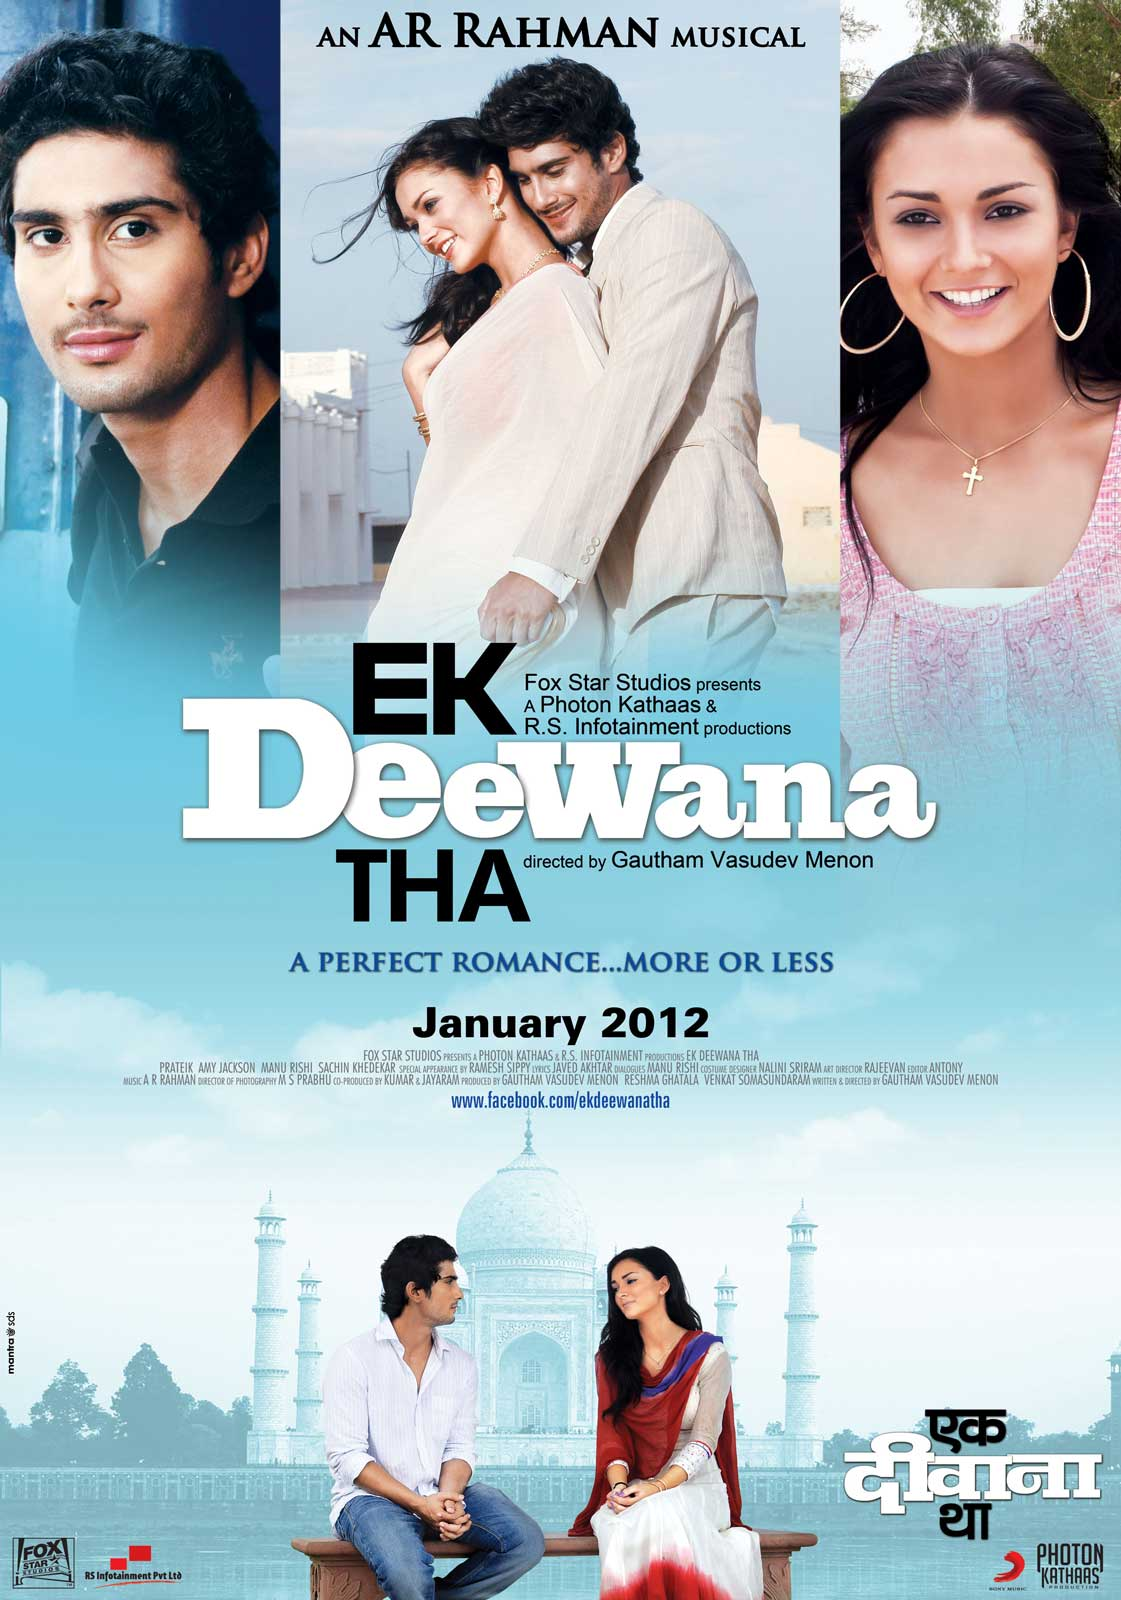 Ek Deewana Tha Cast and Crew